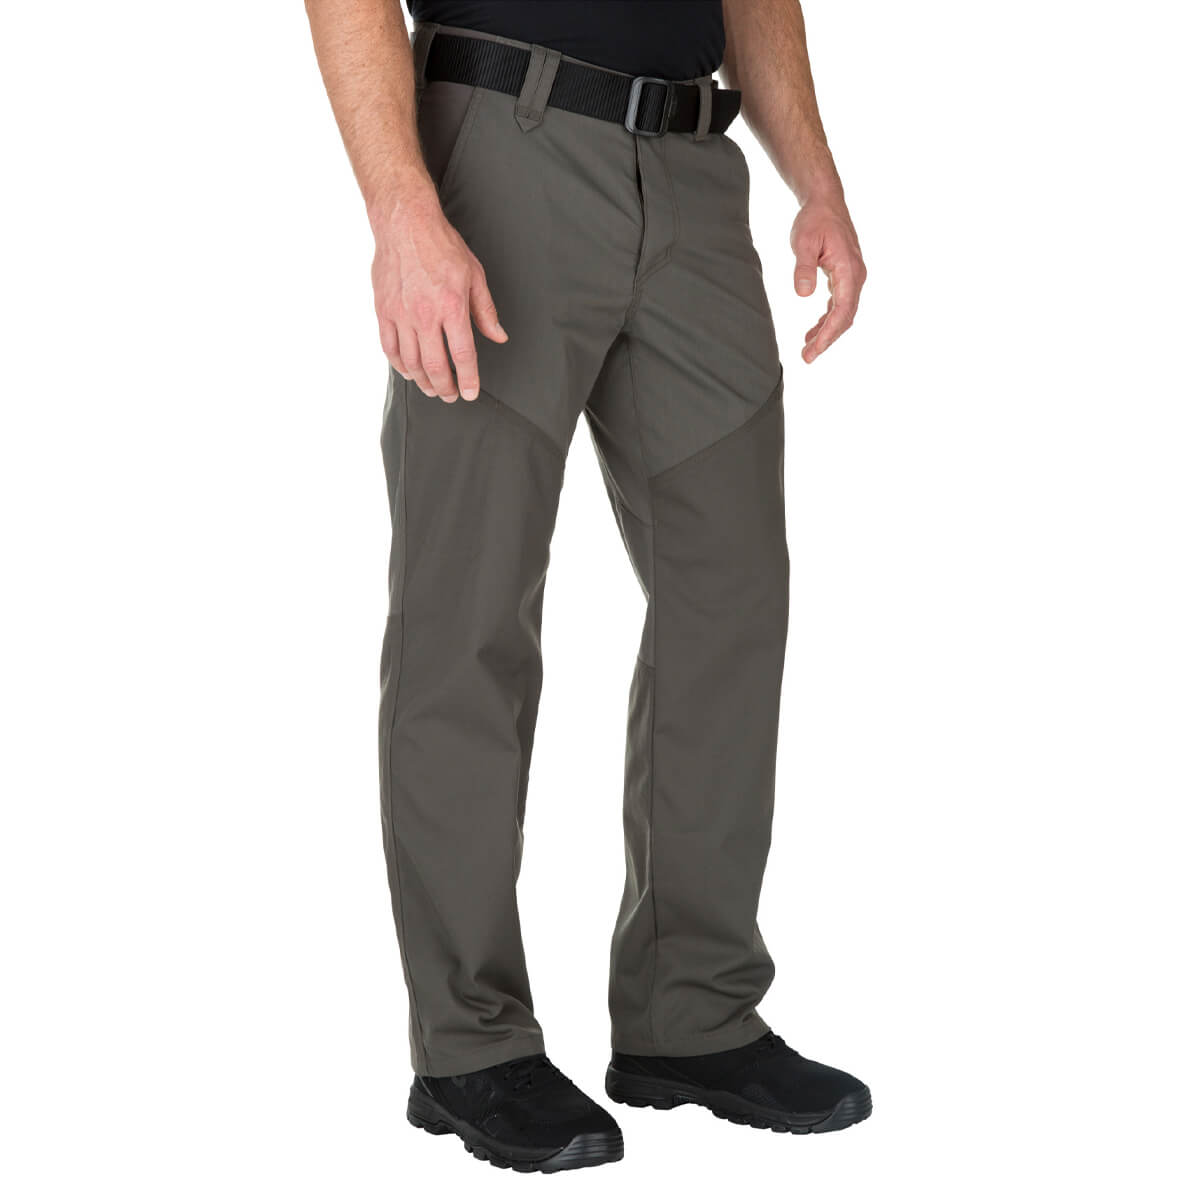 5.11 Stonecutter Pants